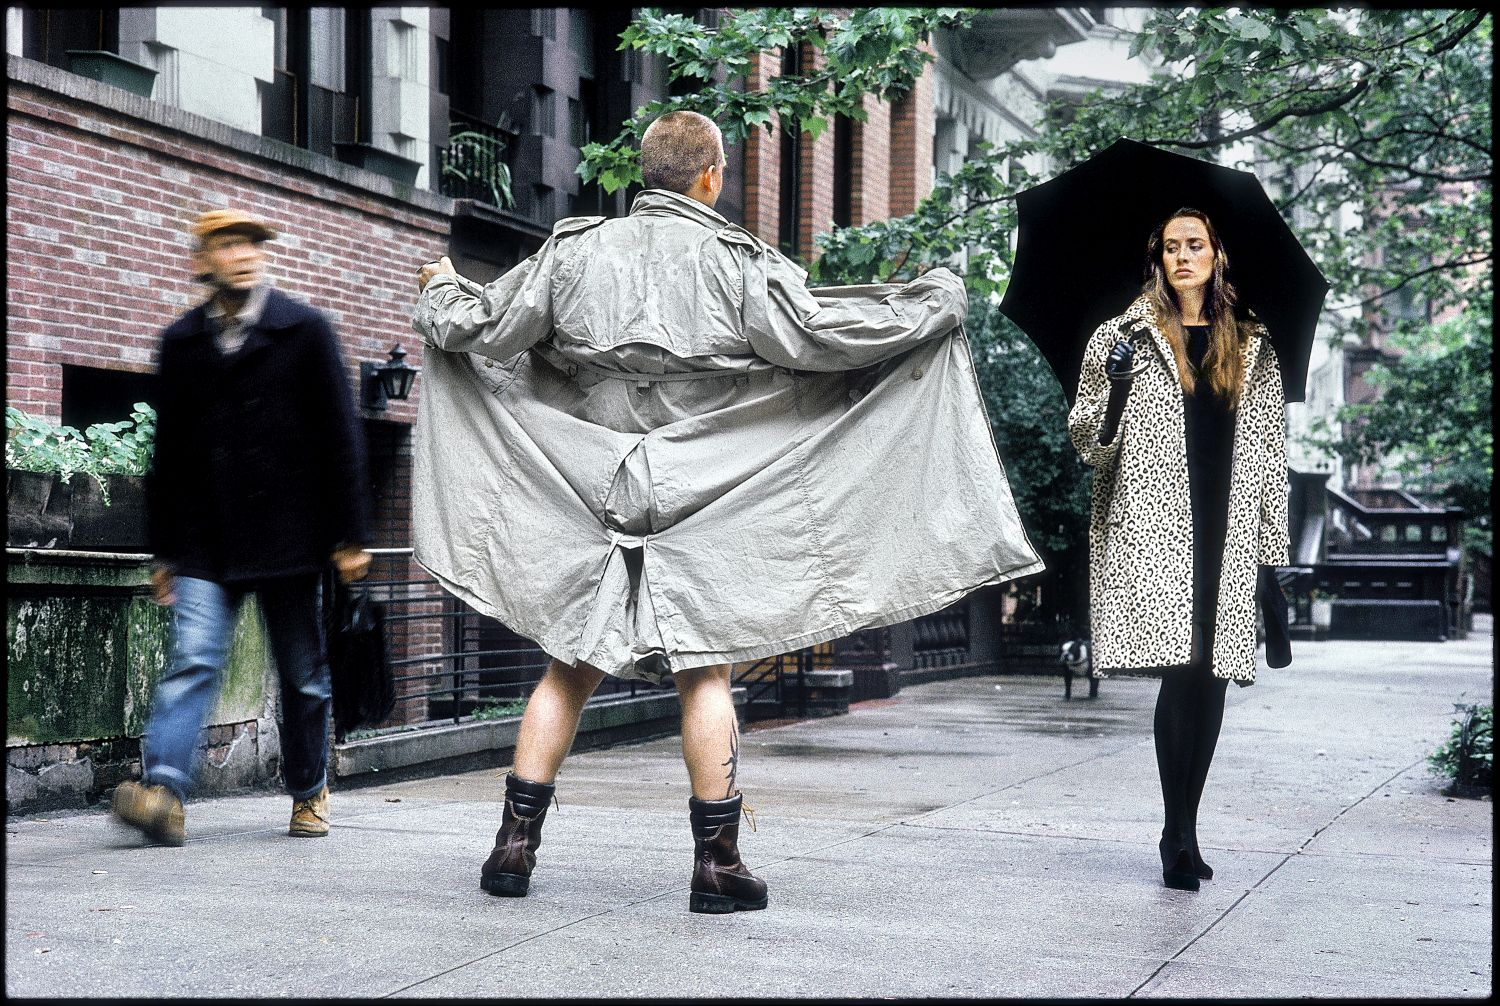 New York City, New York, USA 1989 © Elliott Erwitt/MAGNUM PHOTOS